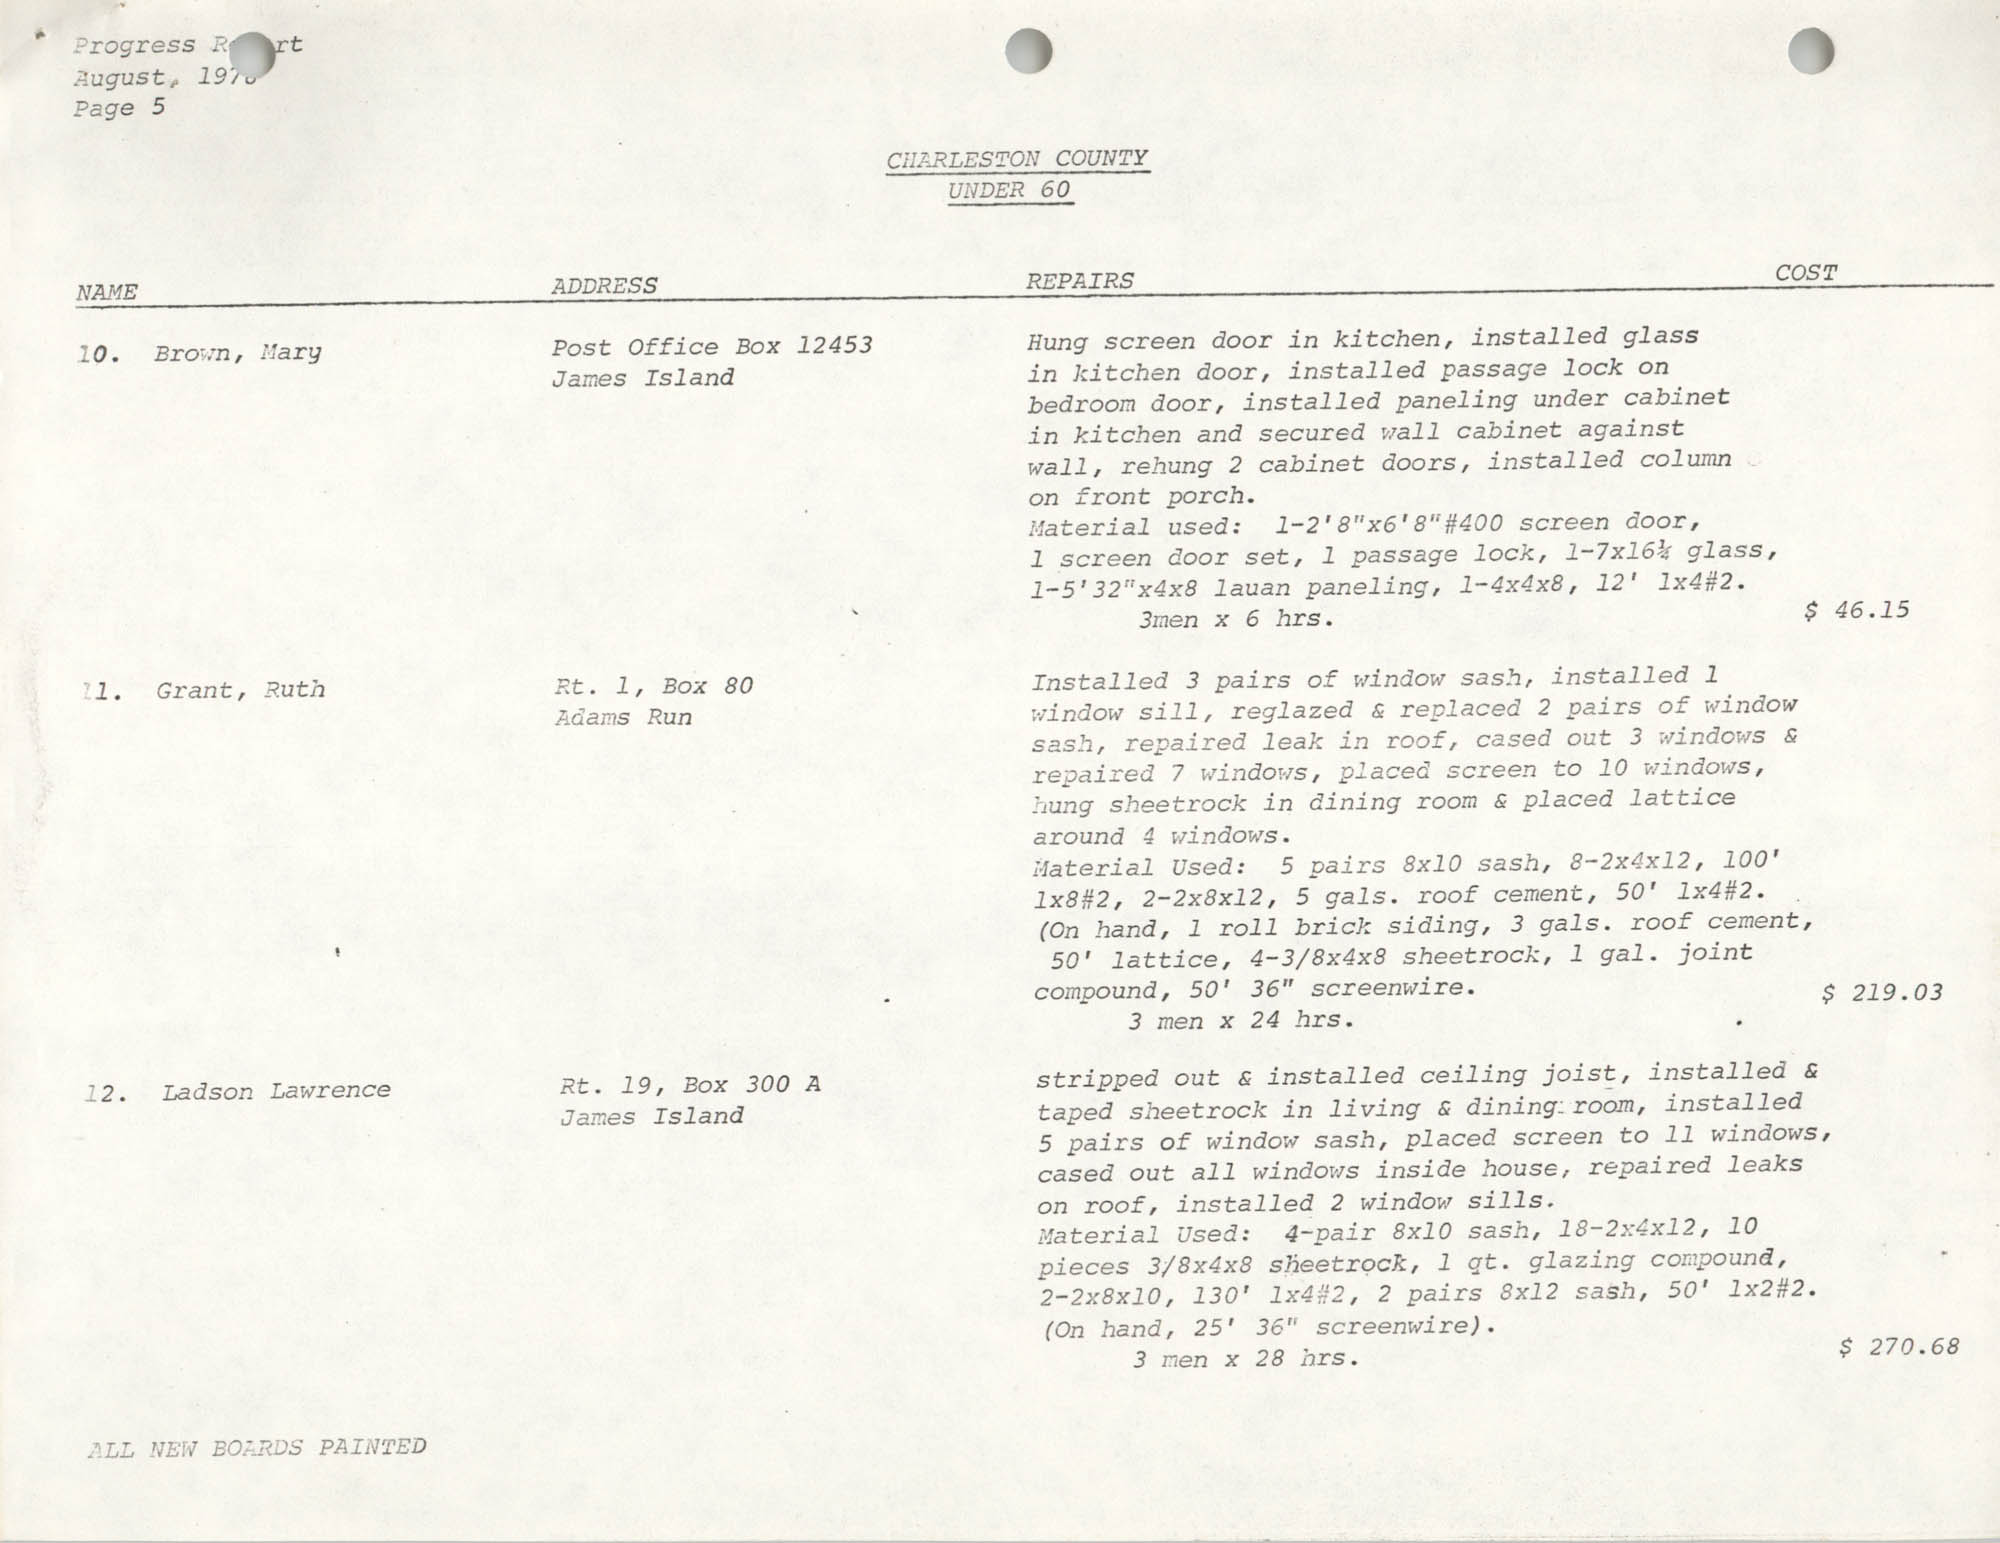 Housing Assistance Program Report, August 1978, Page 5